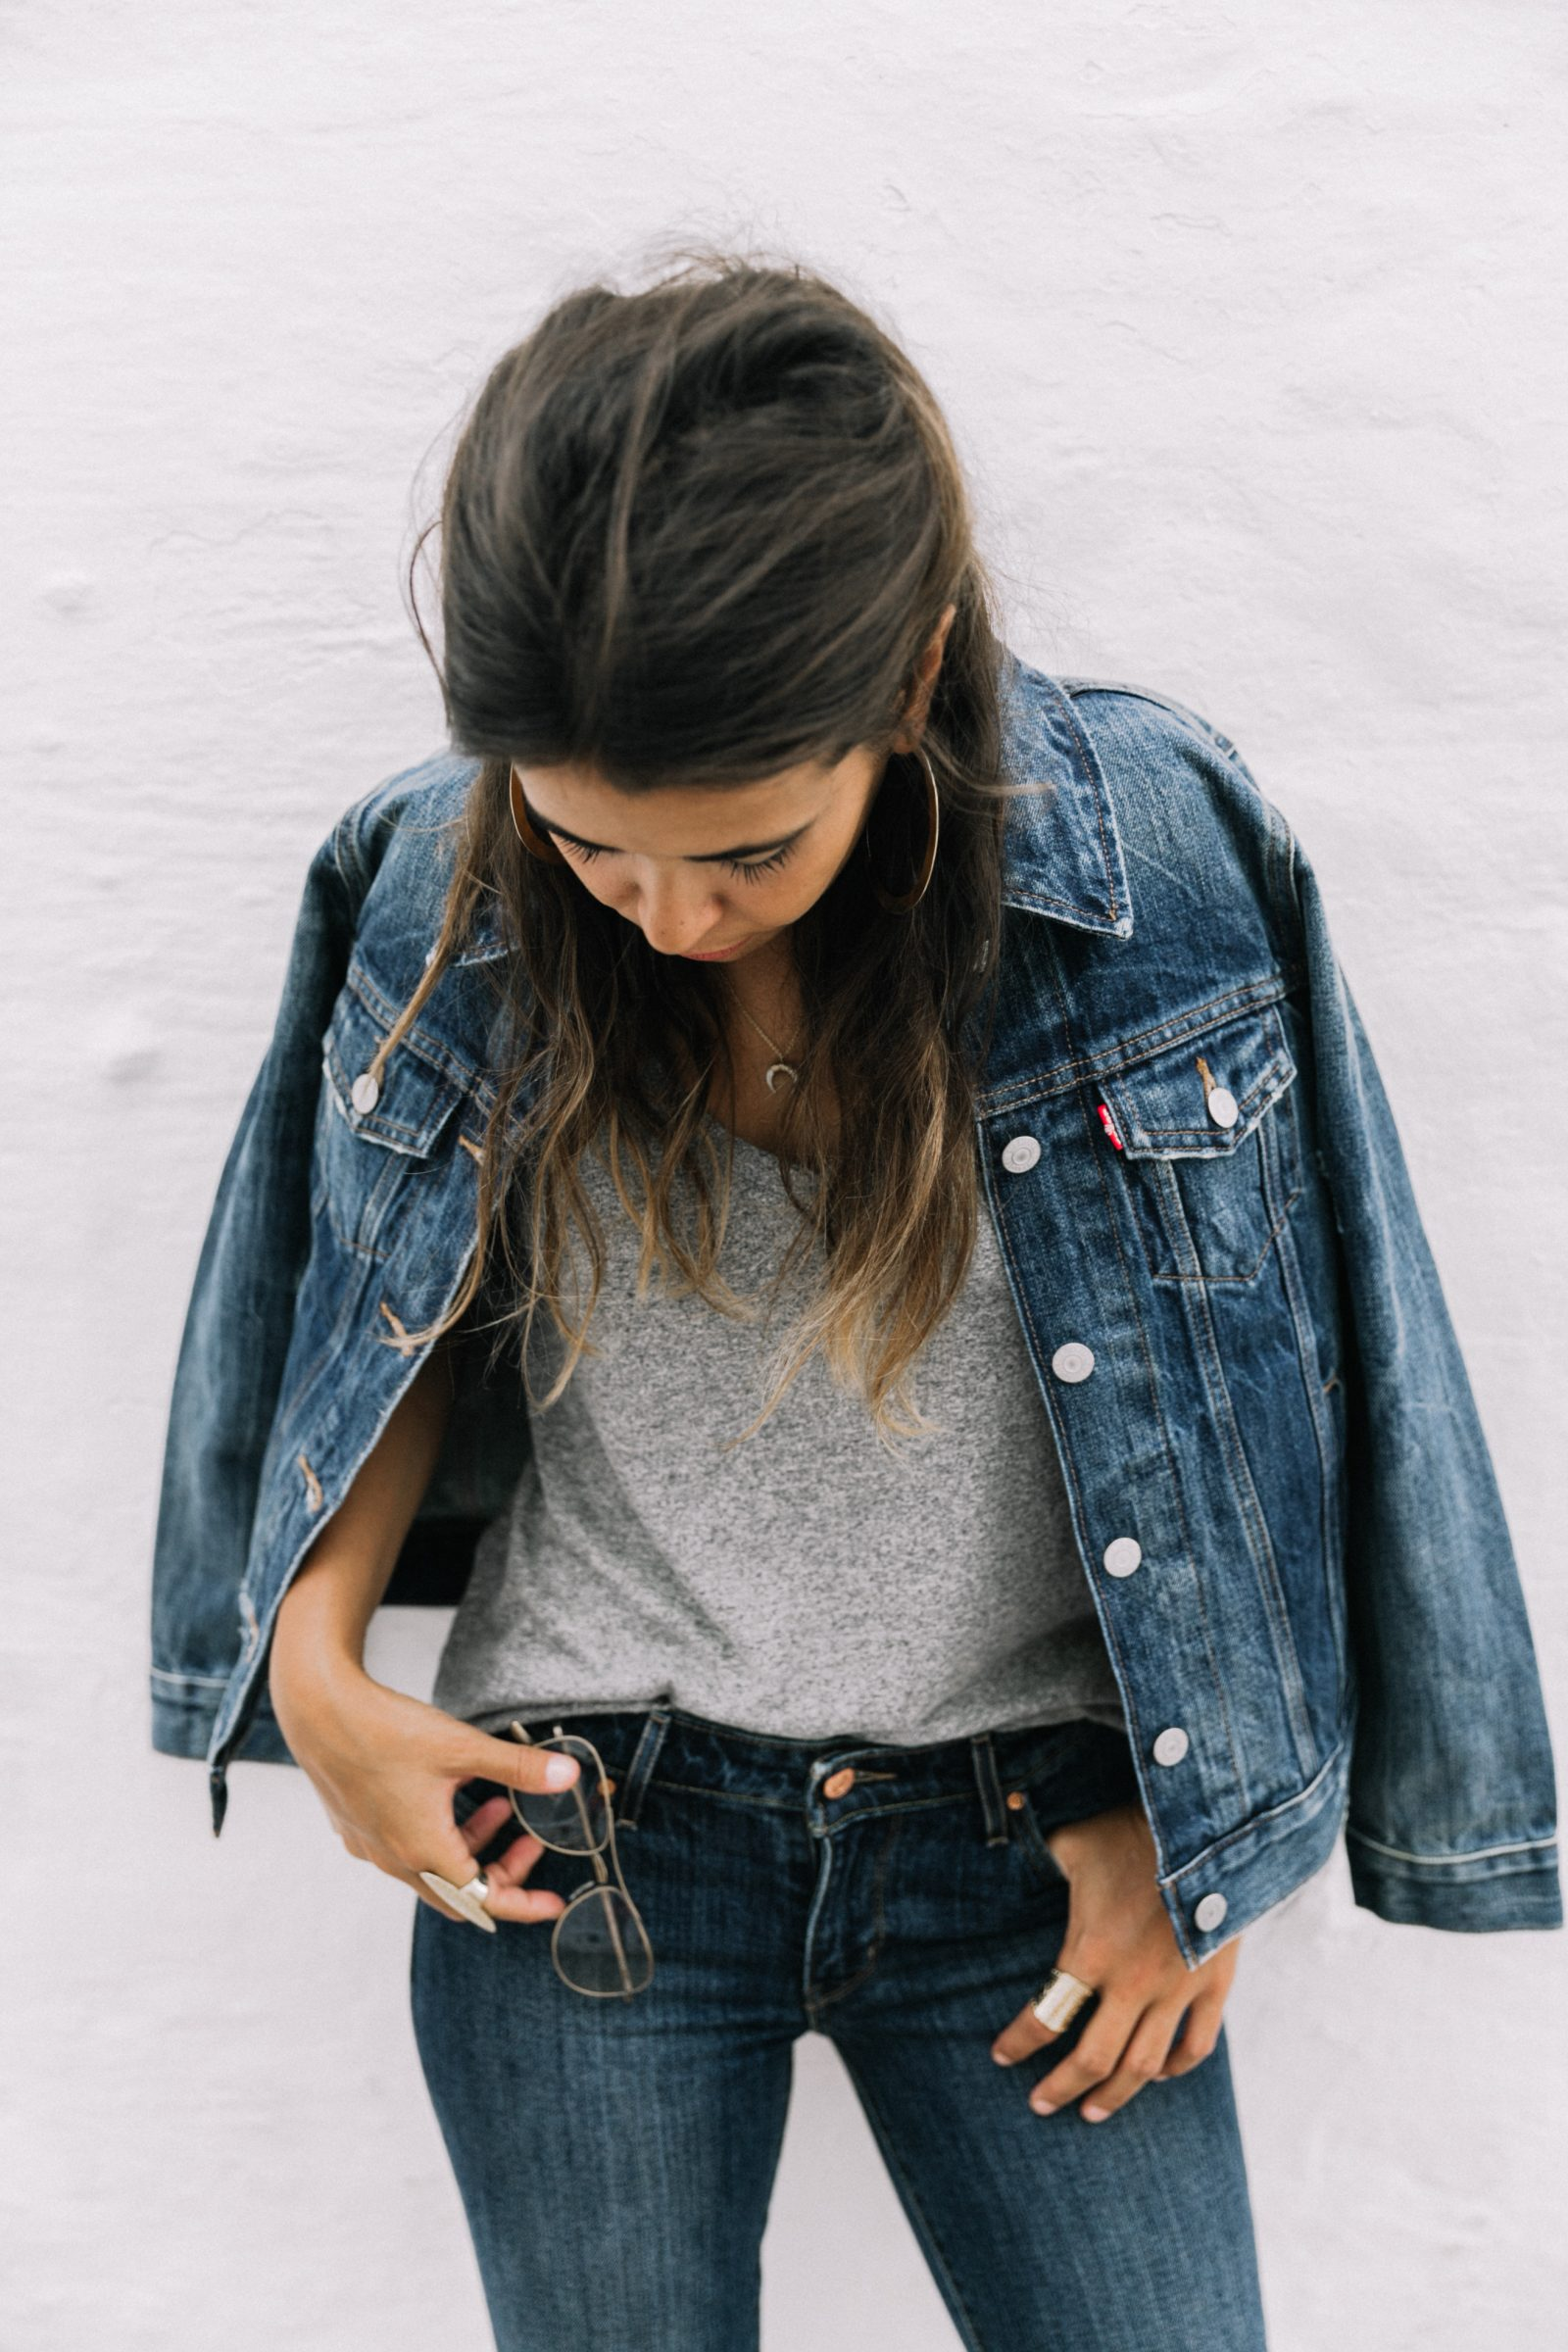 Live_in_Levis-Denim-Who_What_Wear-Levis-Denim-Double_Denim-Menorca-Street_Style-Collage_Vintage-45